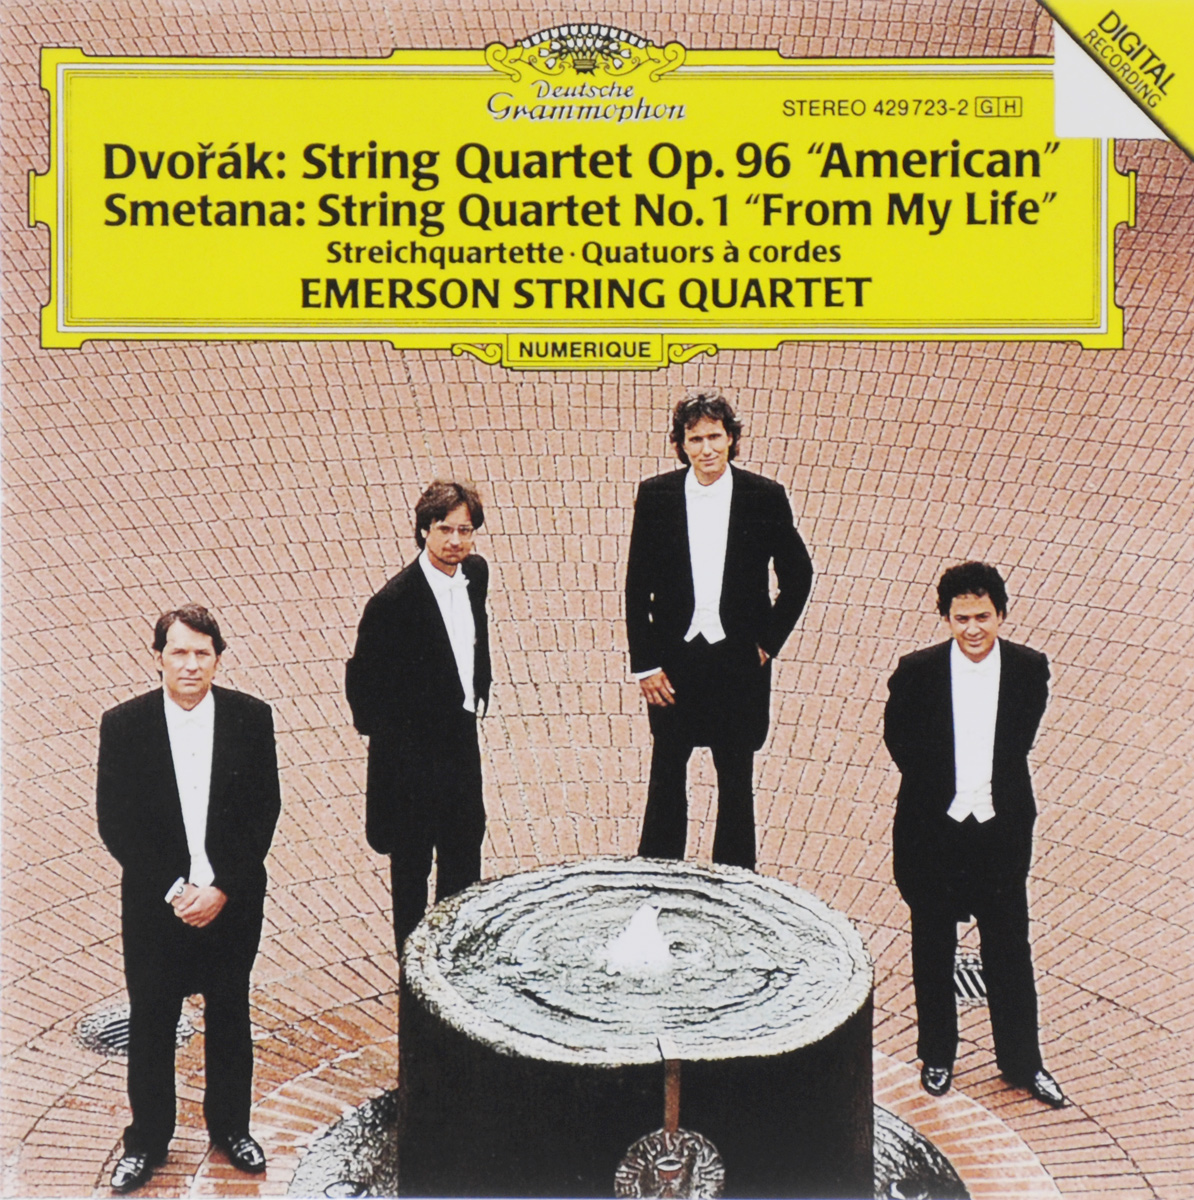 Emerson String Quartet Emerson String Quartet. String Quartet Op. 96 American / String Quartet No. 1 From My Life bic пластилин kids 12 цветов